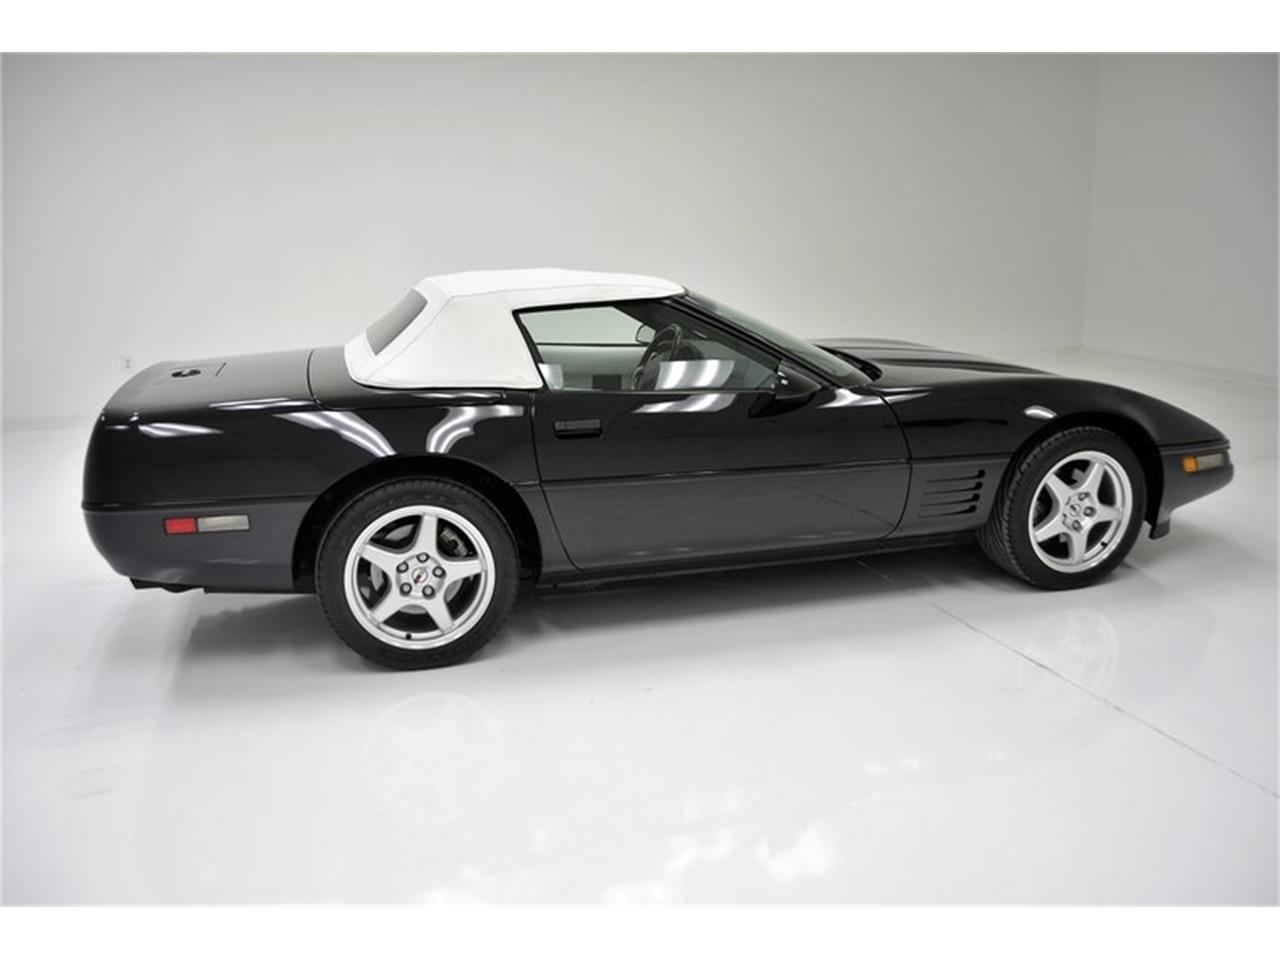 1992 Chevrolet Corvette (CC-1089194) for sale in Morgantown, Pennsylvania